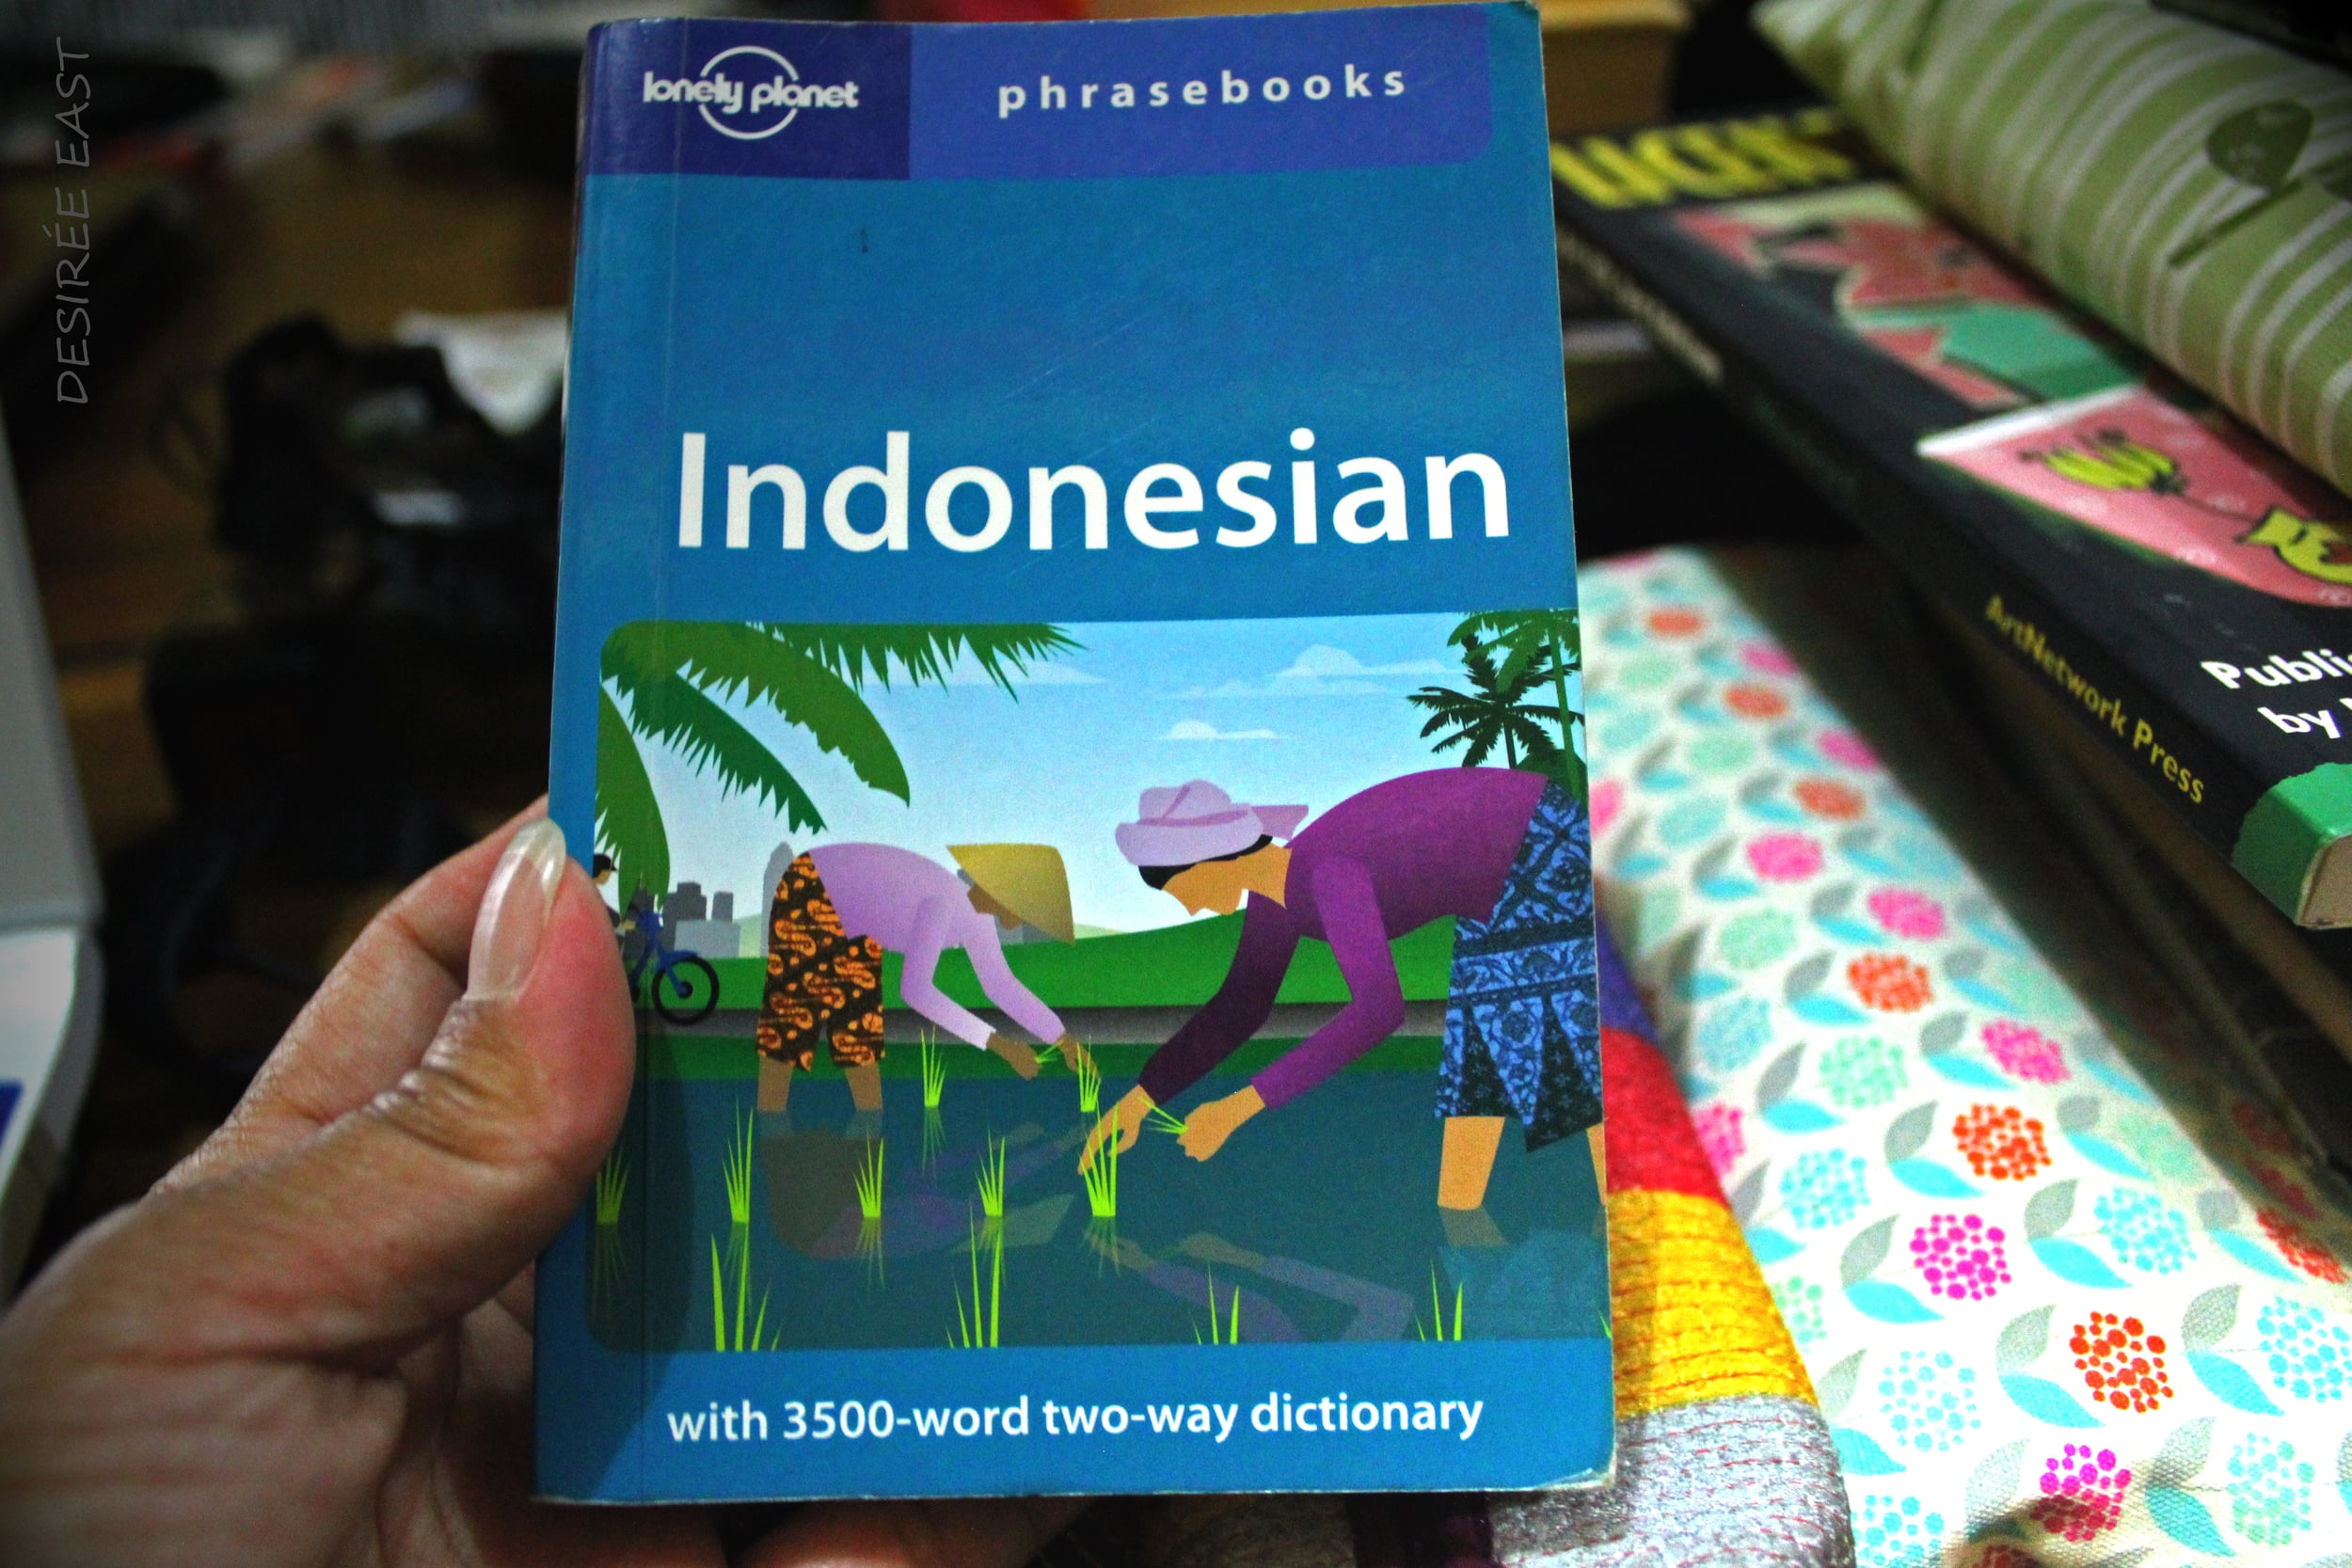 indonesian dictionary and phrase book. photo by artist desiree east